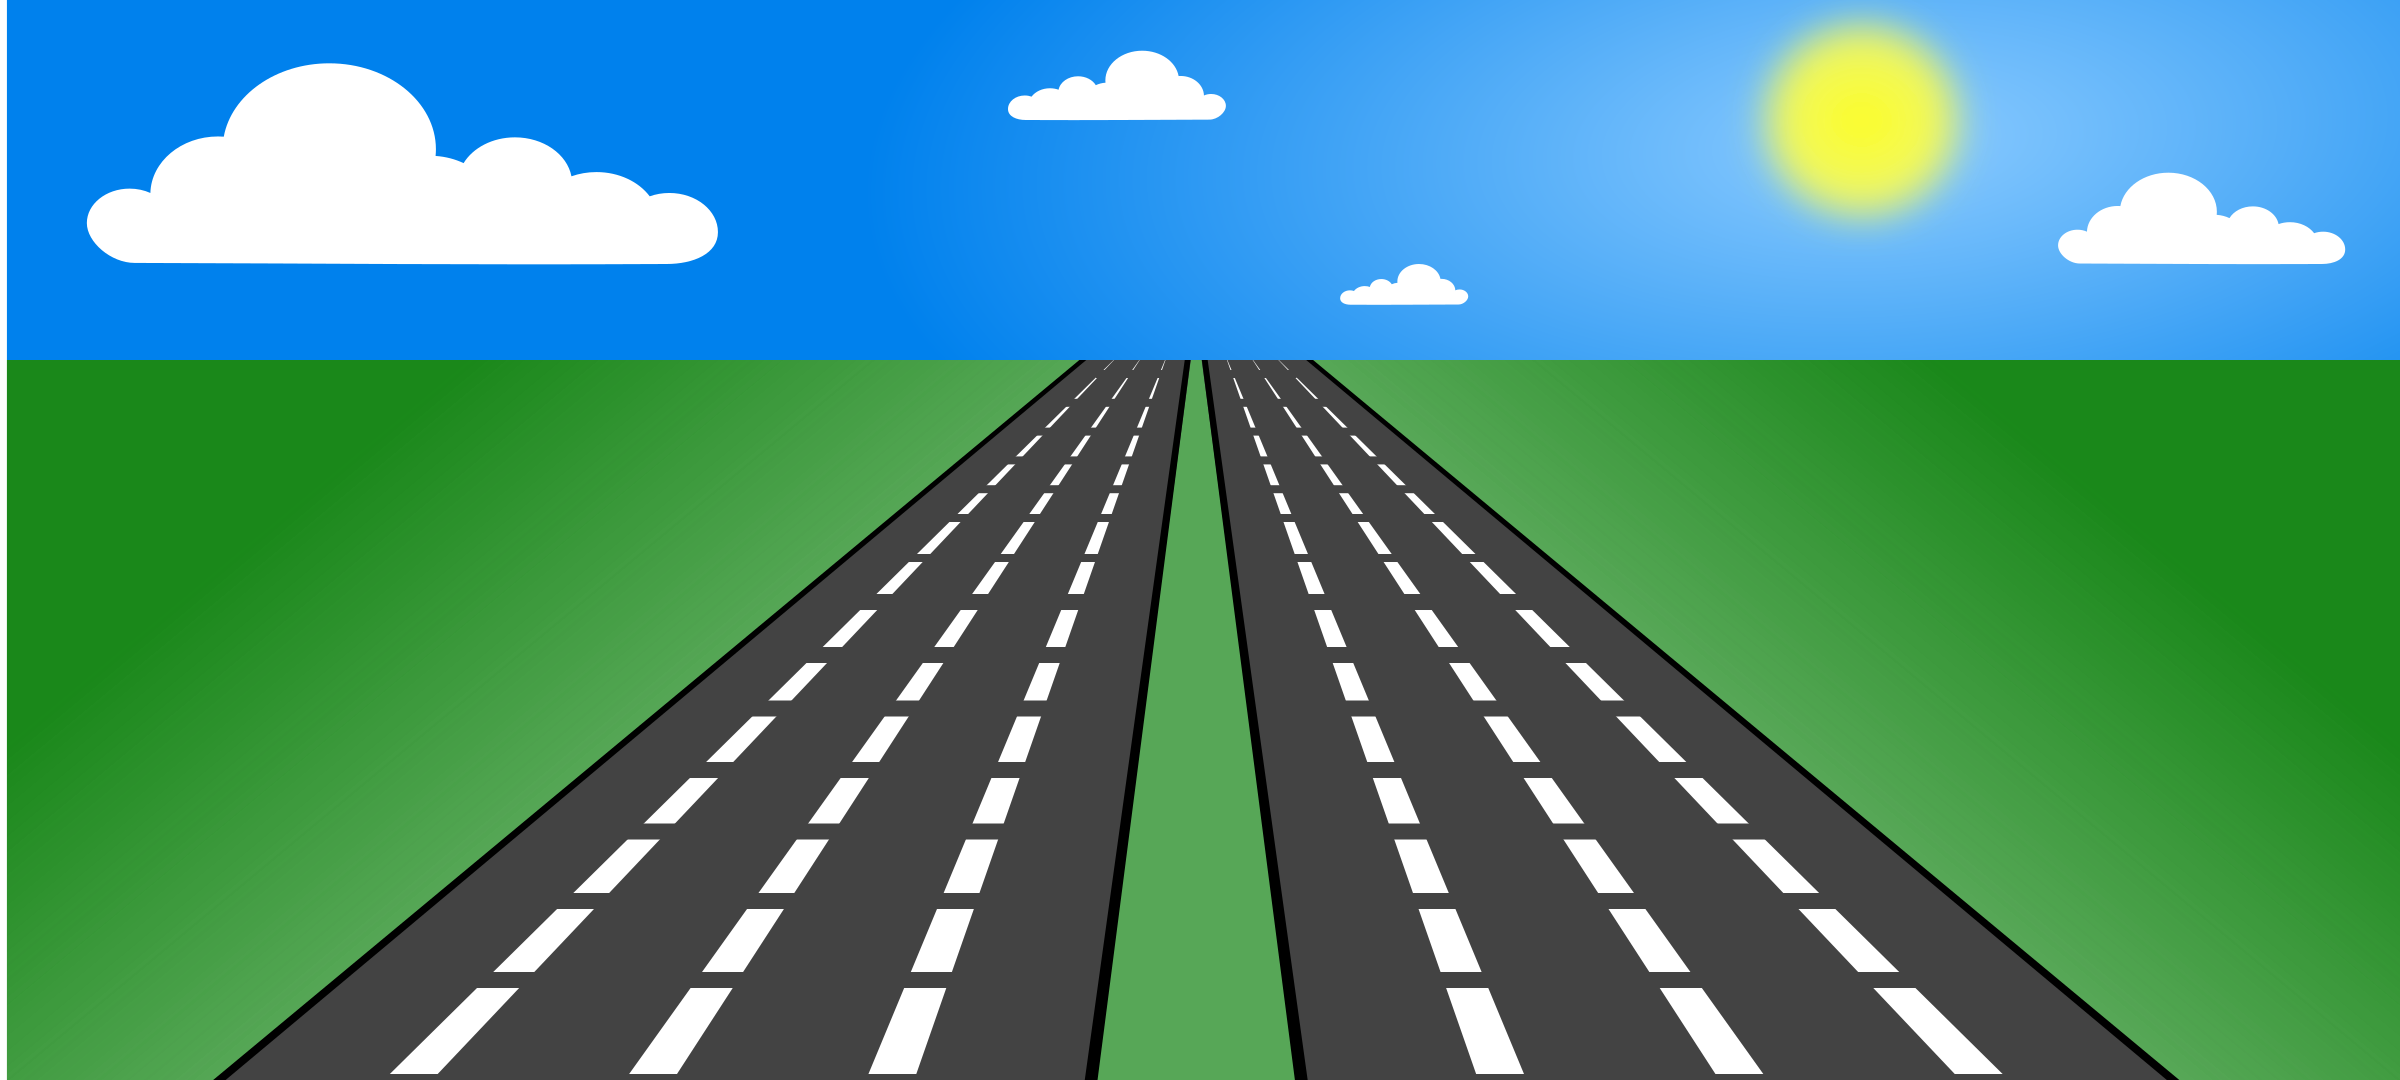 Pathway clipart hilly road. Register lgam knowledge base